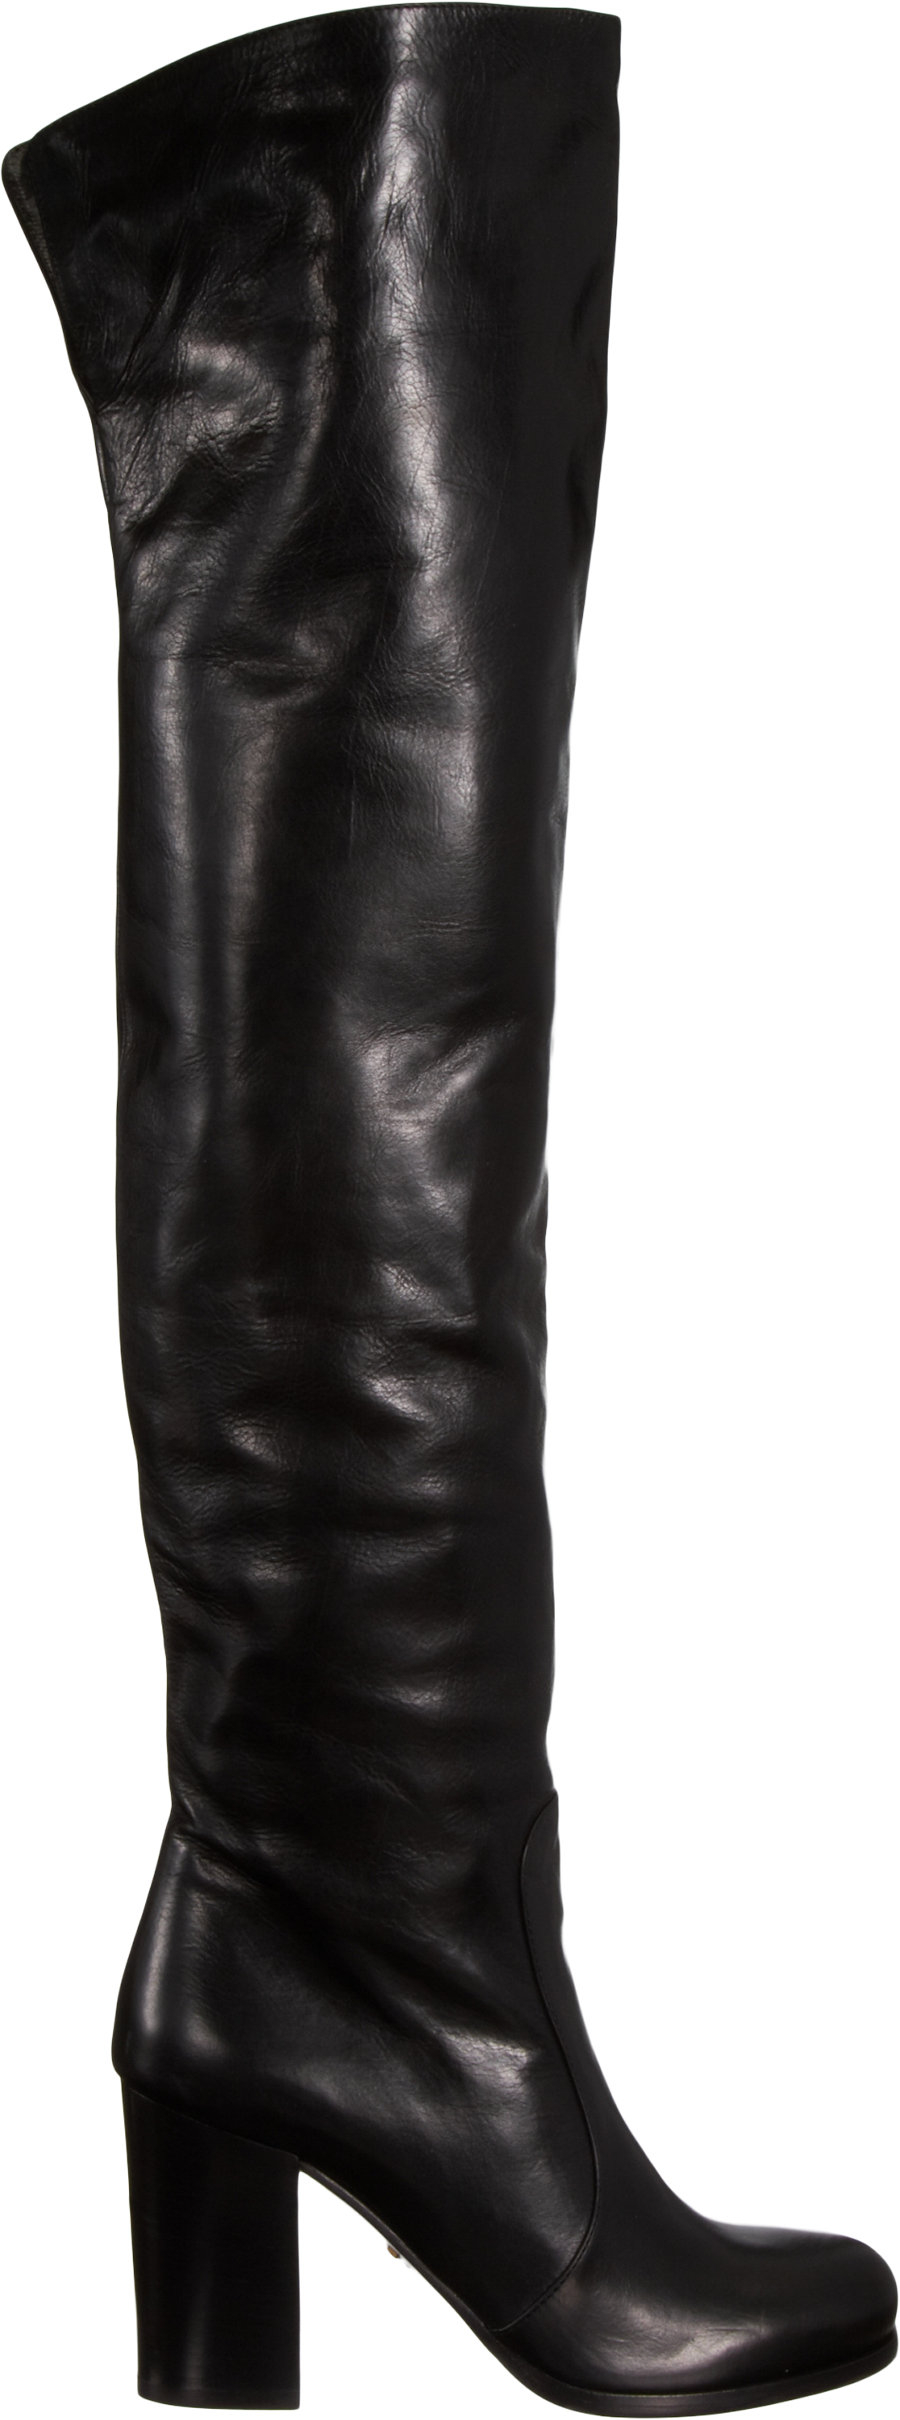 637e0d10037d Prada Slouchy Over-The-Knee Boot in Black - Lyst